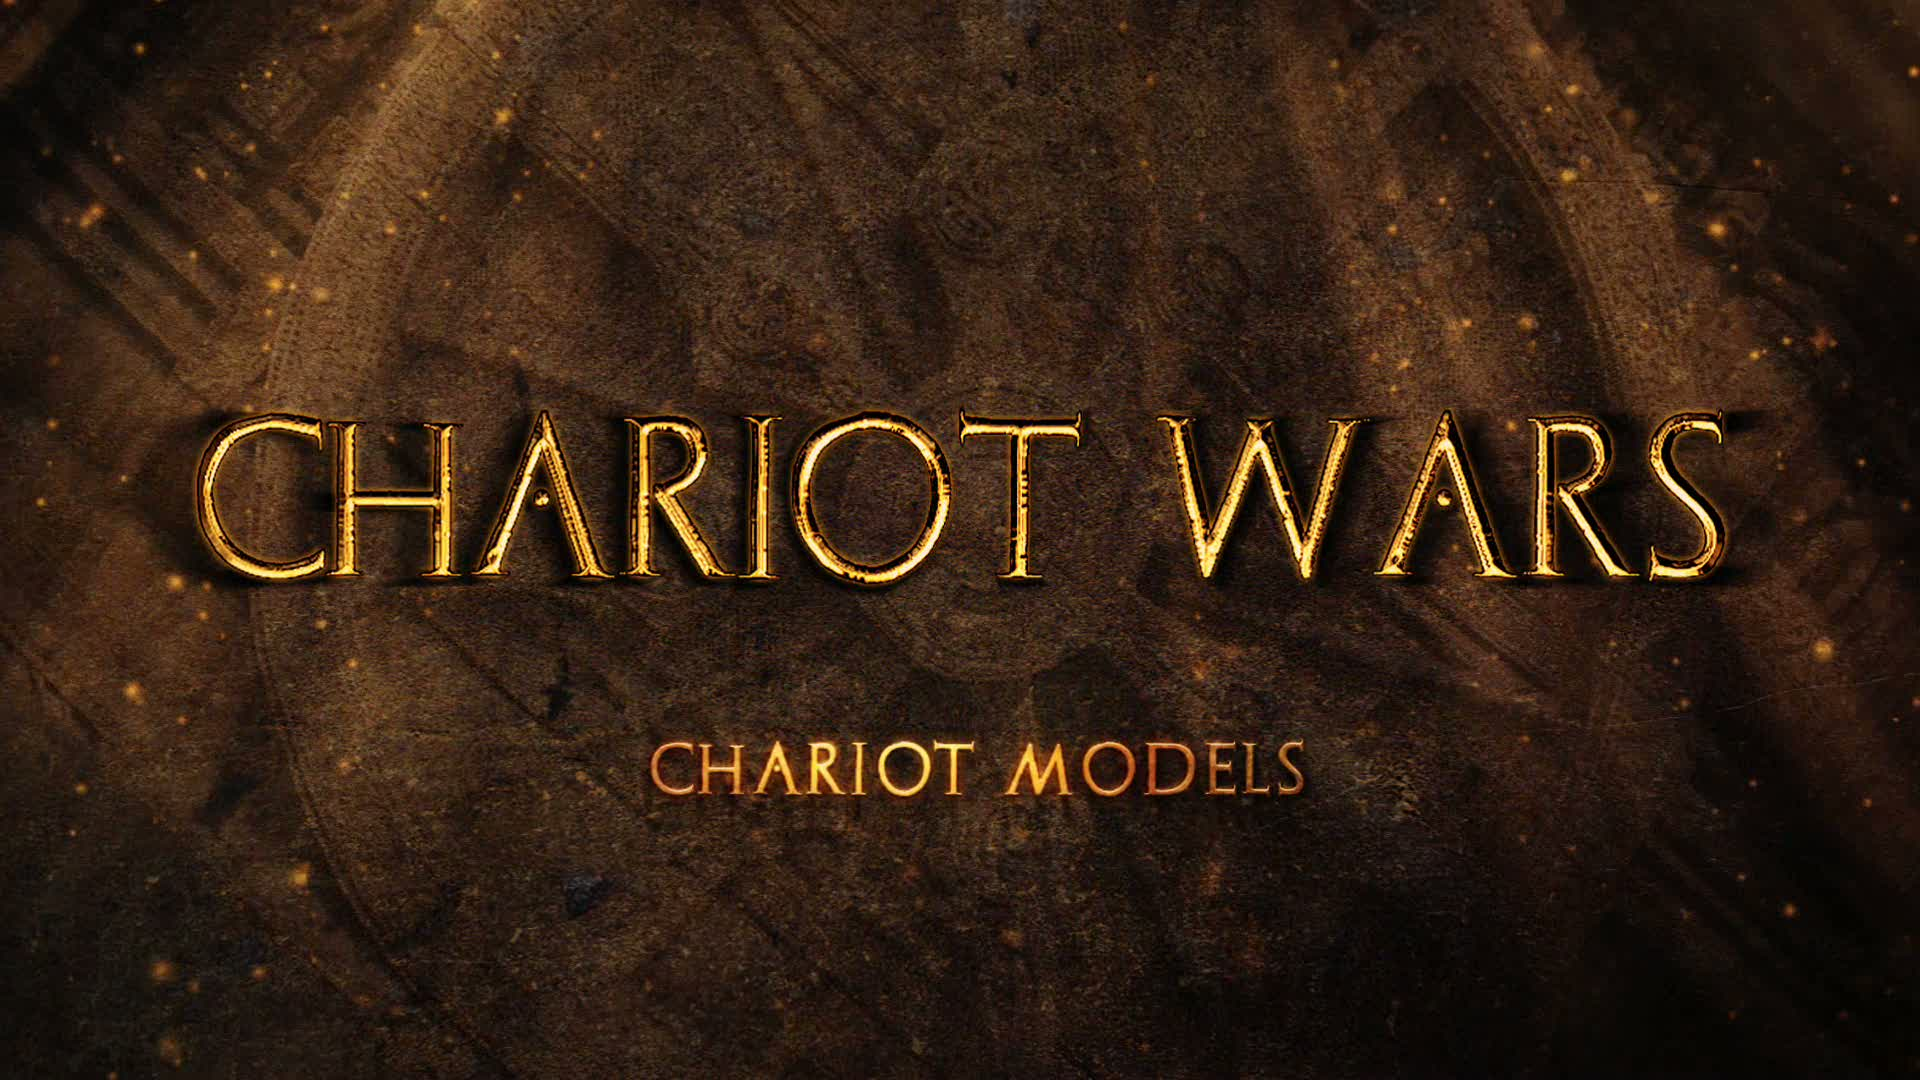 Chariot Models Video | Chariot Wars